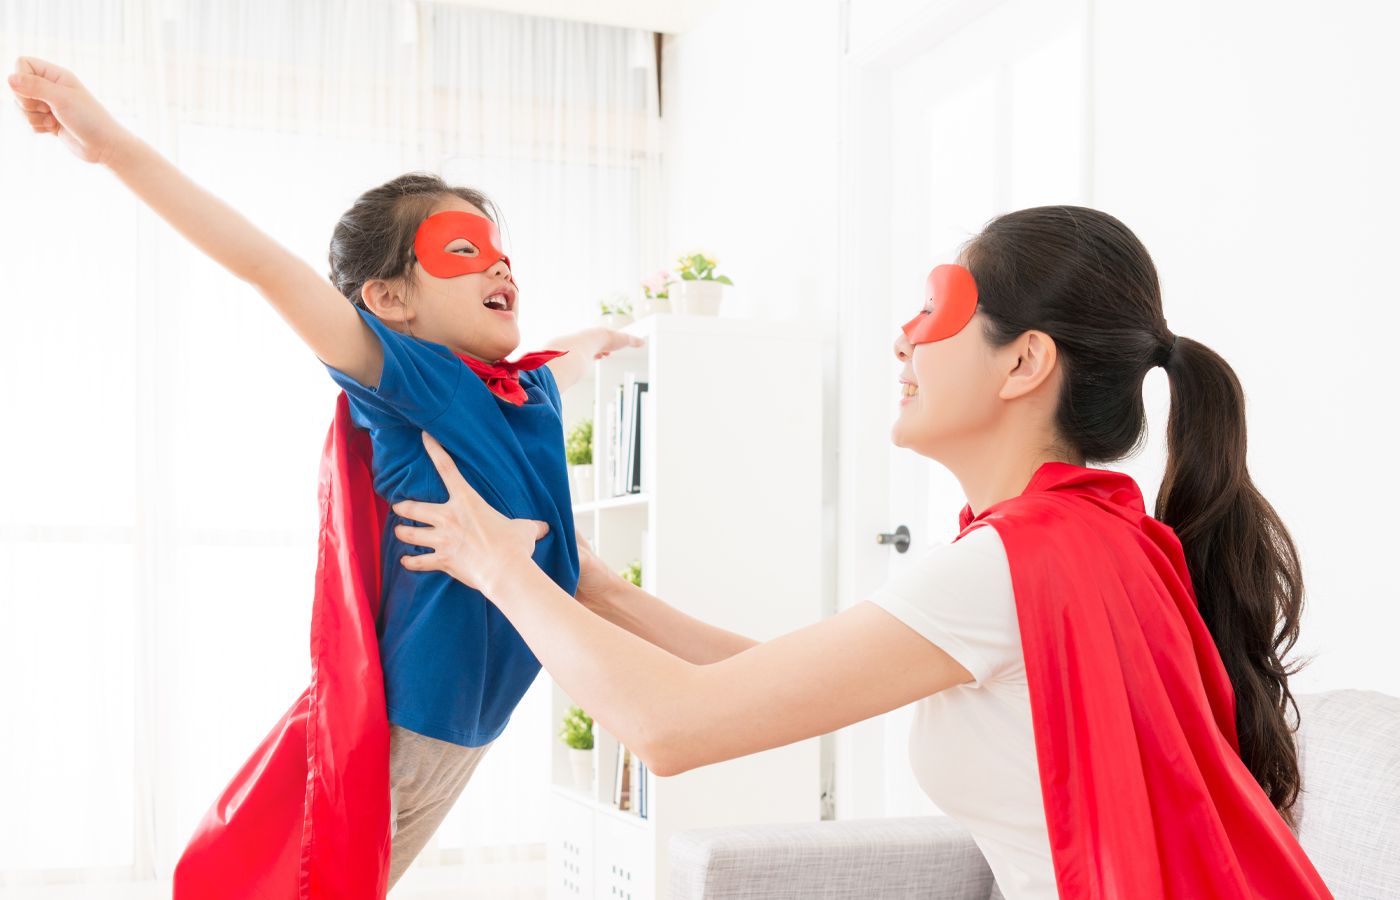 Mom Super Powers & Your Parenting Style